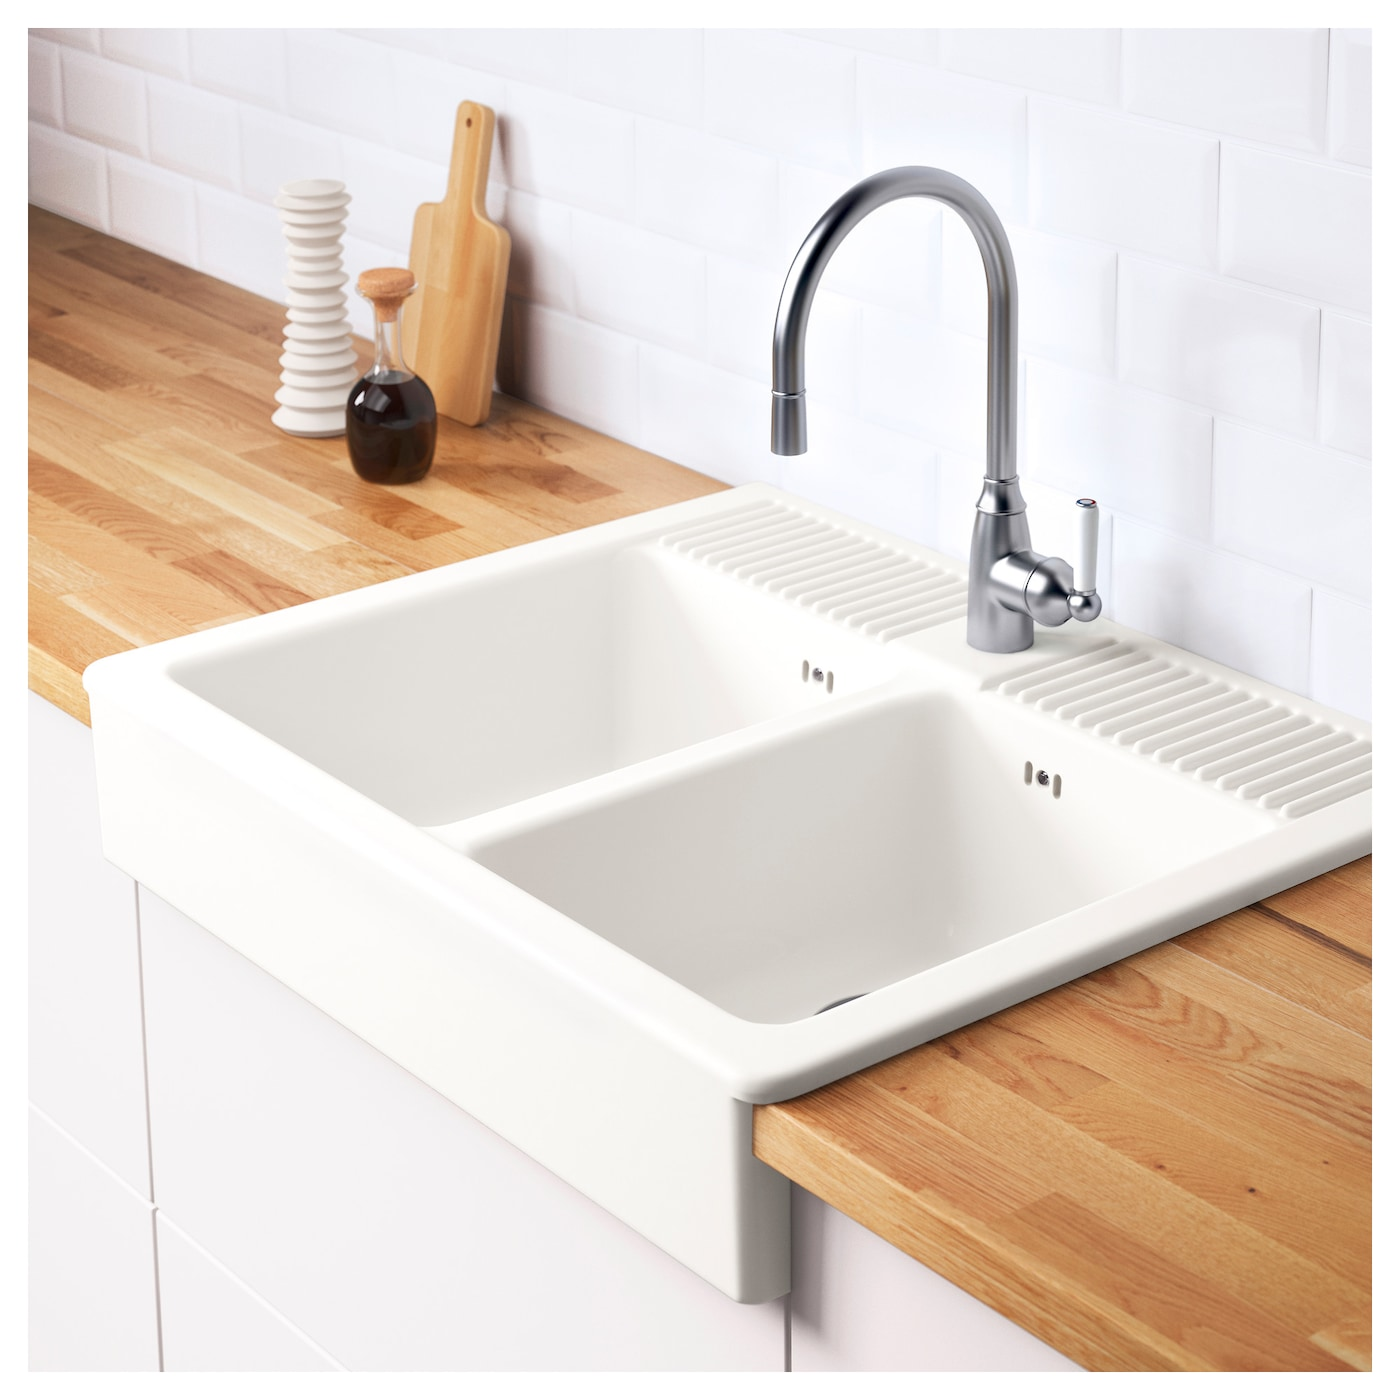 ikea uk kitchen sinks domsj 214 onset sink 2 bowls white 83x66 cm ikea 4604